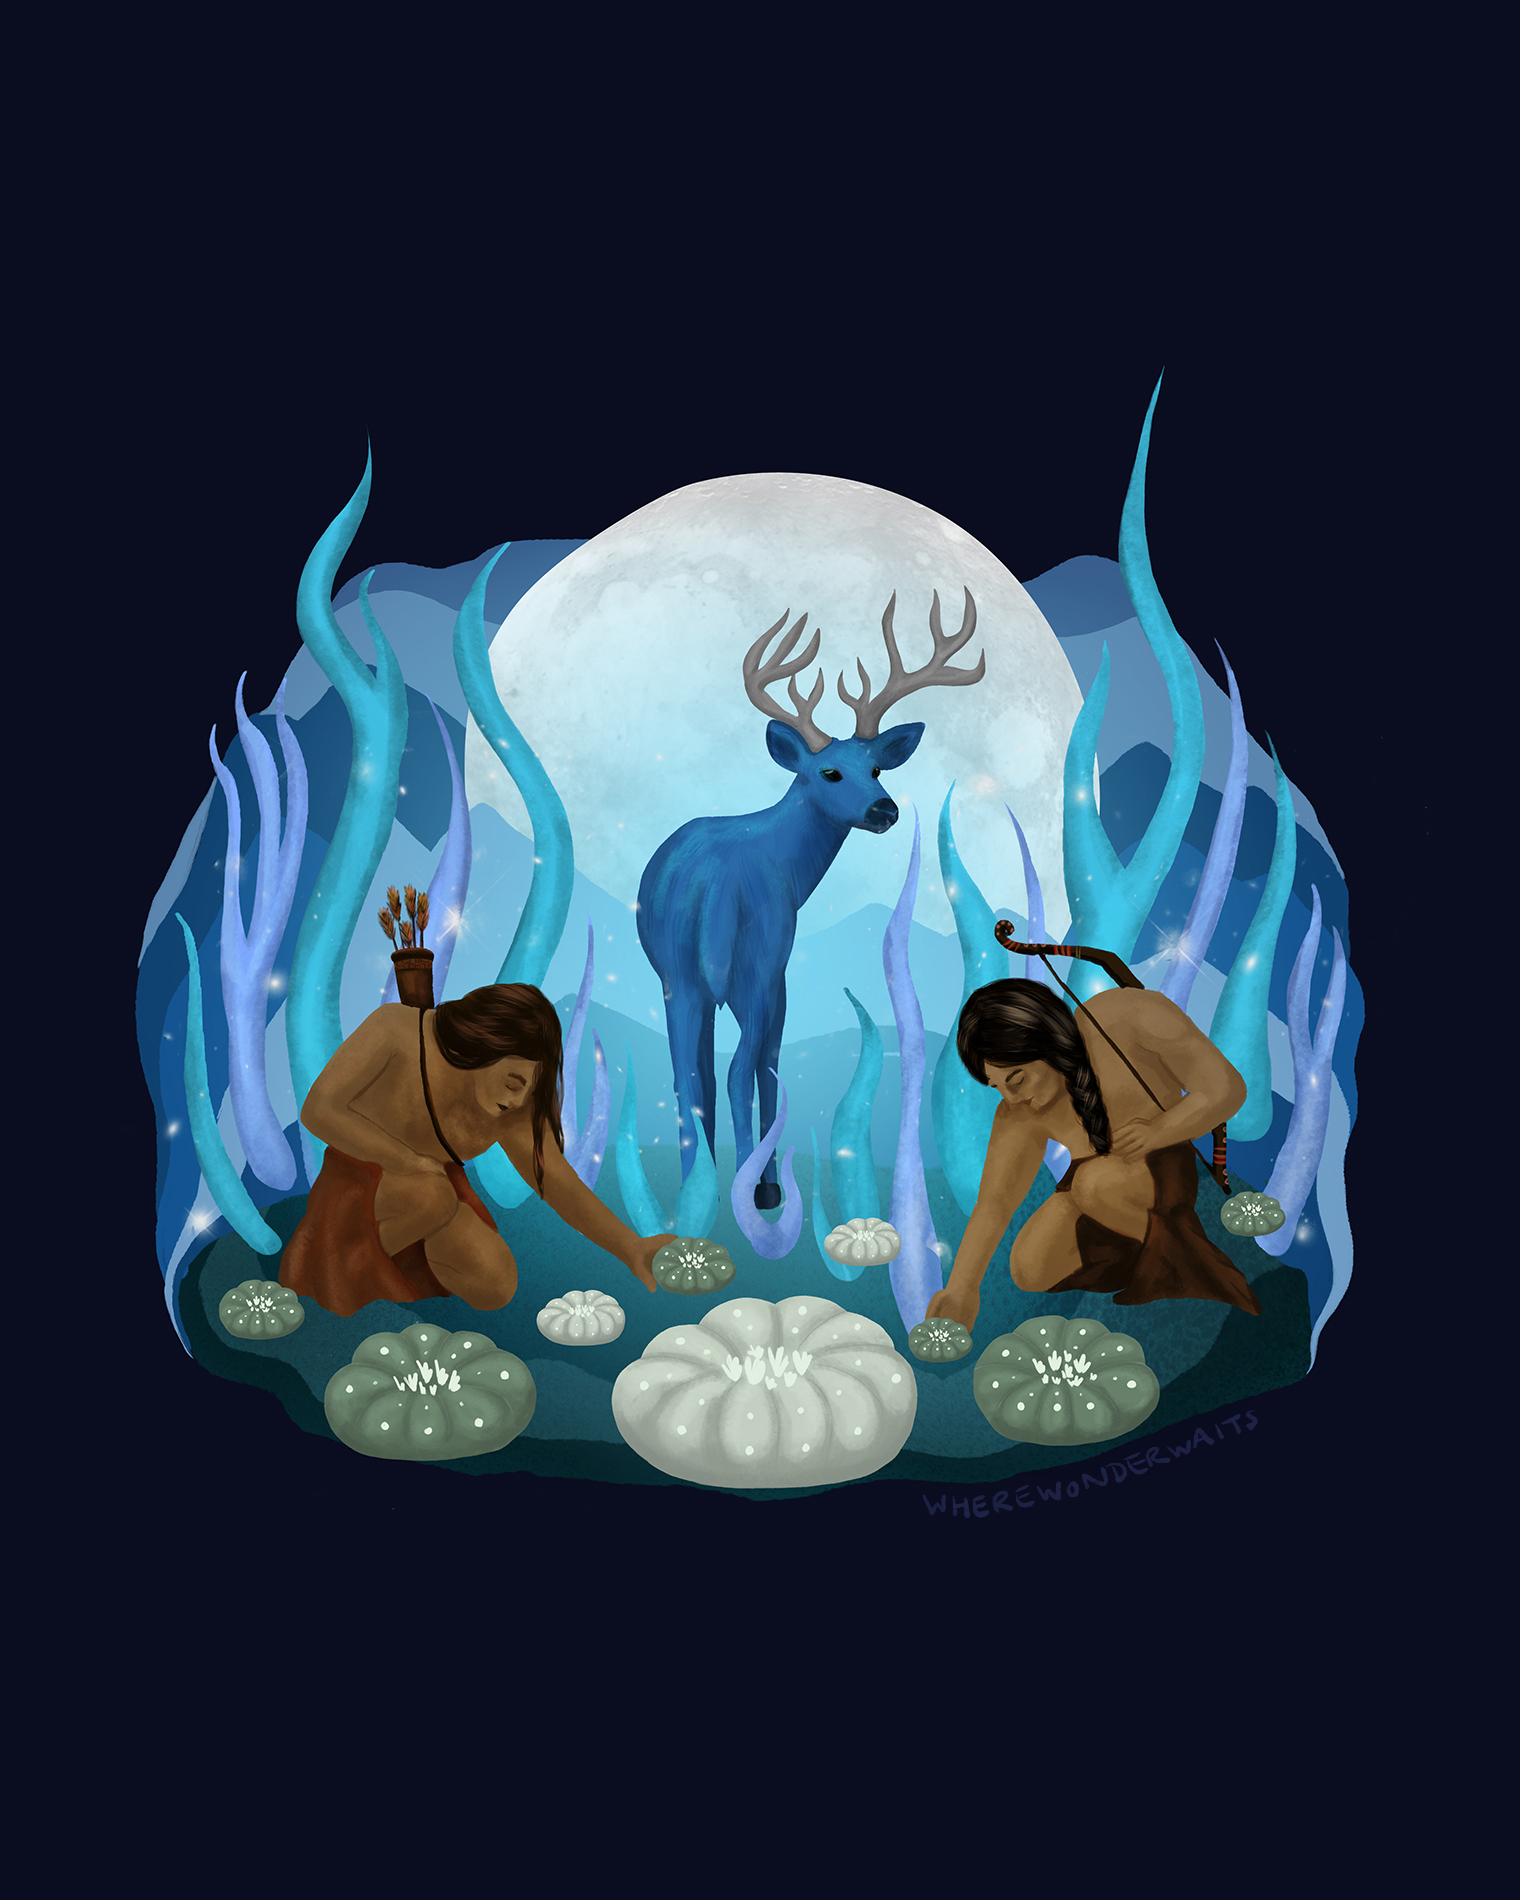 This artwork represents hunters collecting Peyote after being led there by the blue deer (venado azul).